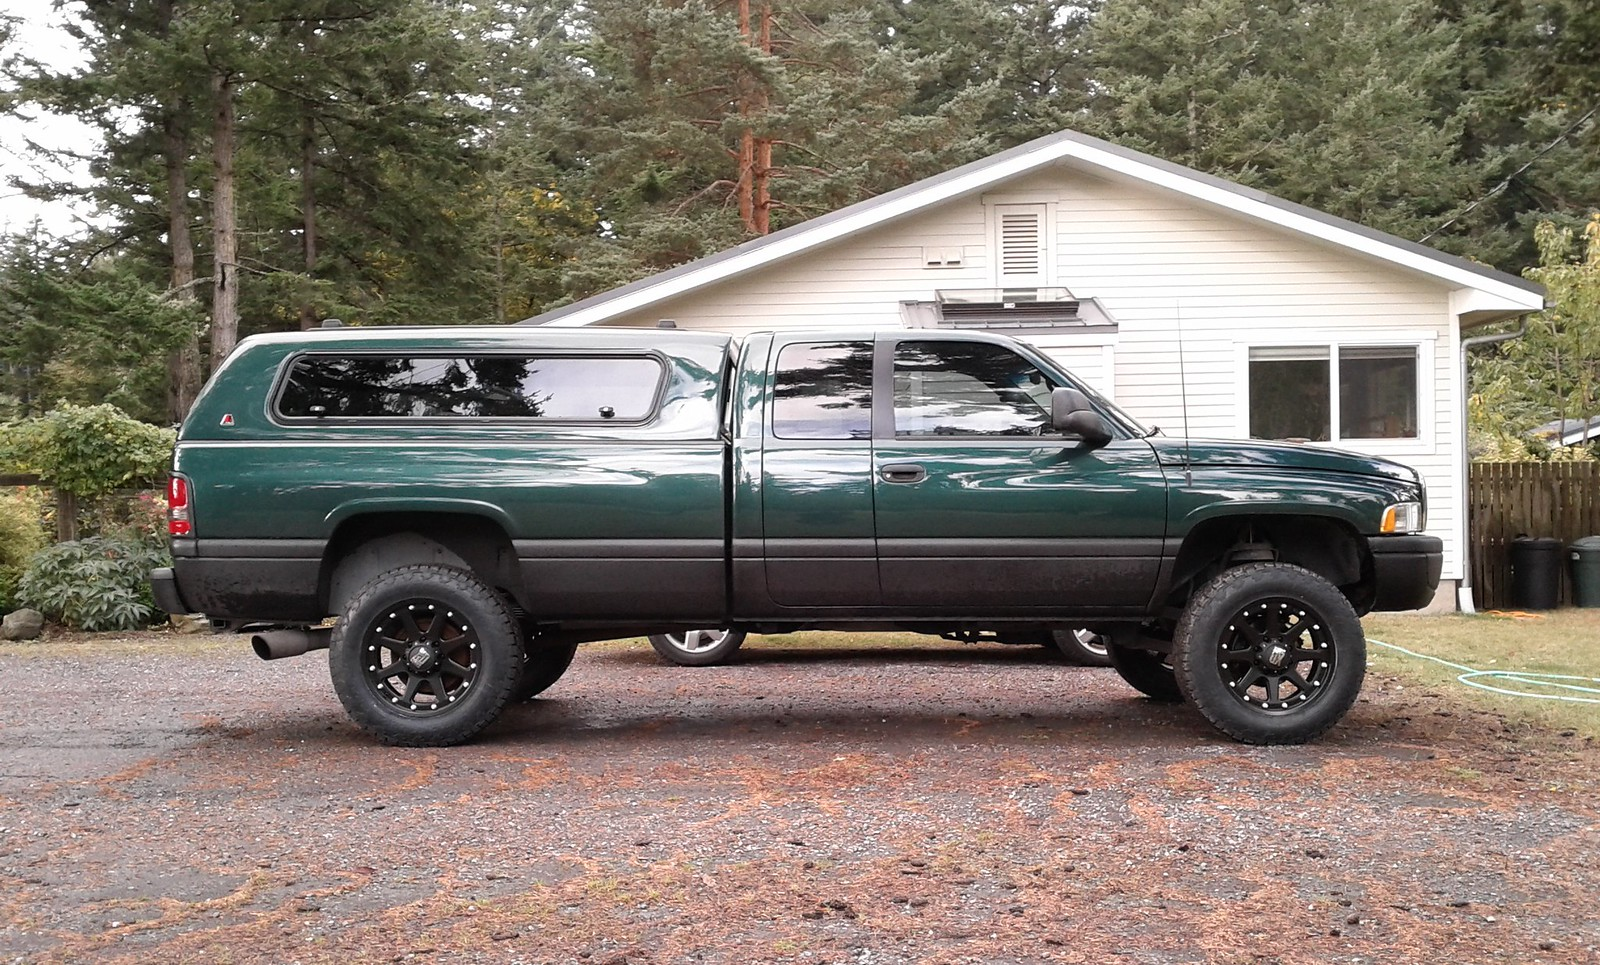 LETS SEE THE SWEET 2nd GENS - Page 188 - Dodge Cummins